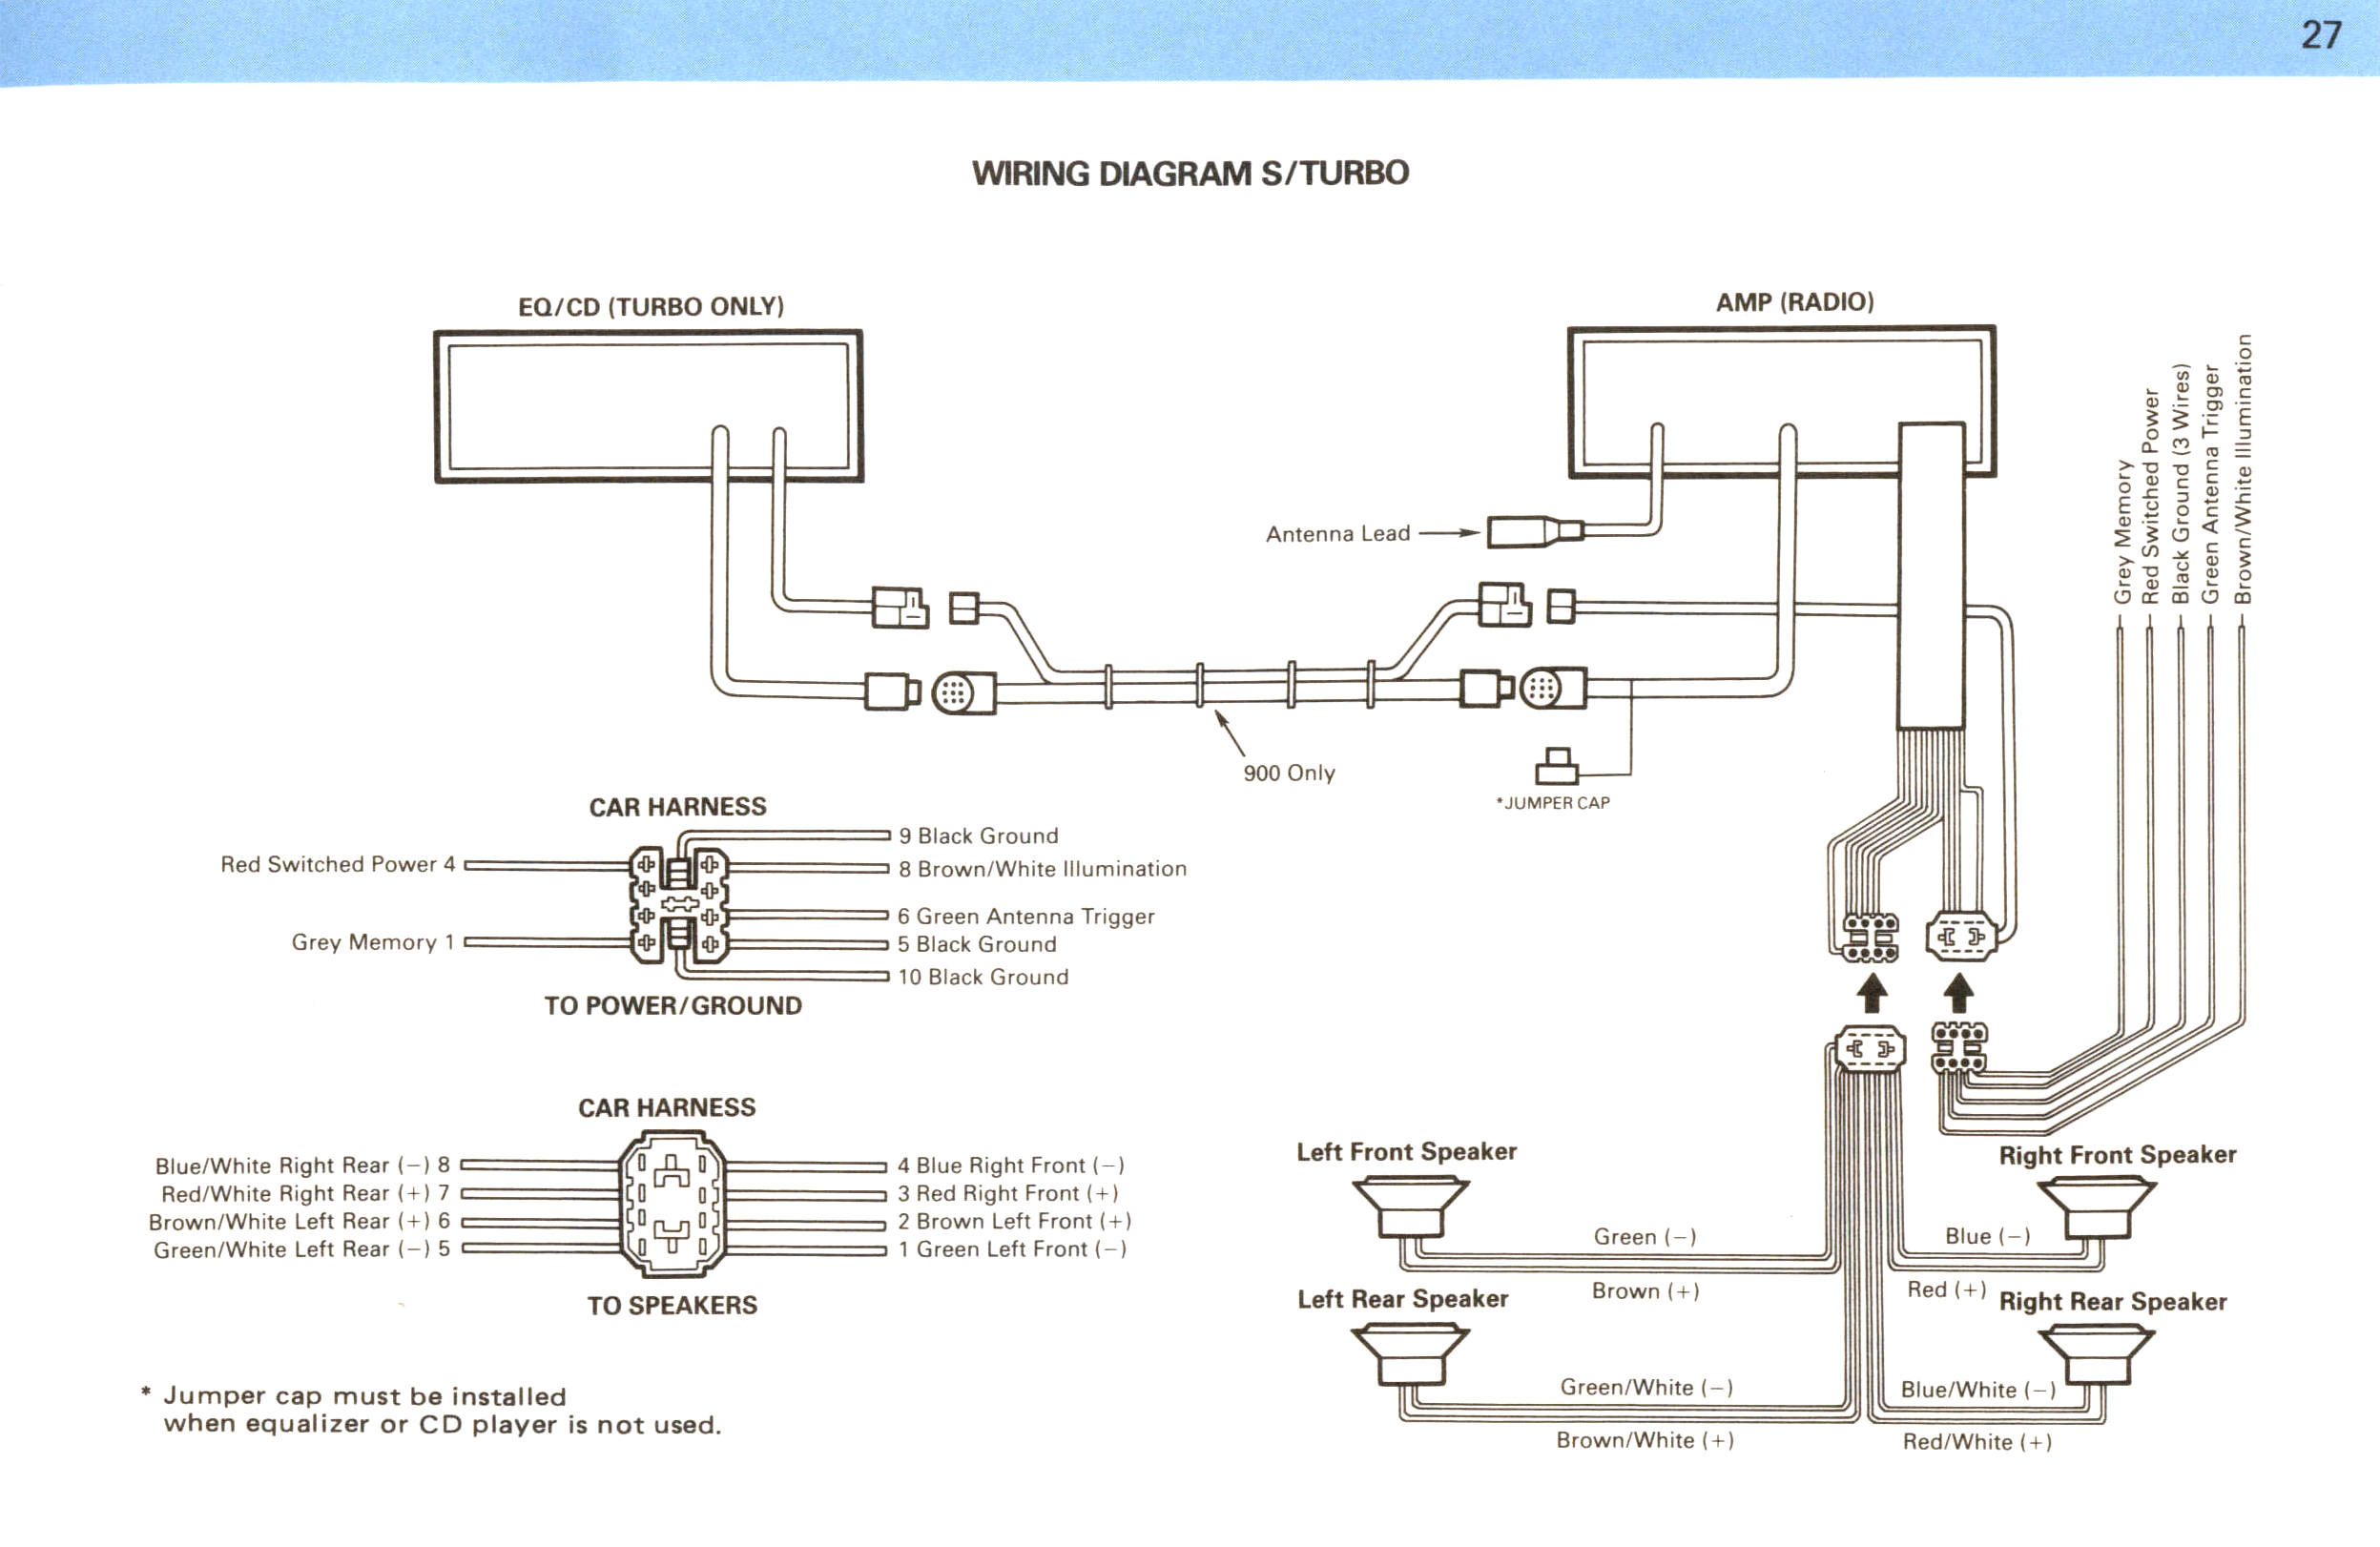 wiring diagram for clarion car stereo mercruiser 5 7 saab audio system my84 94